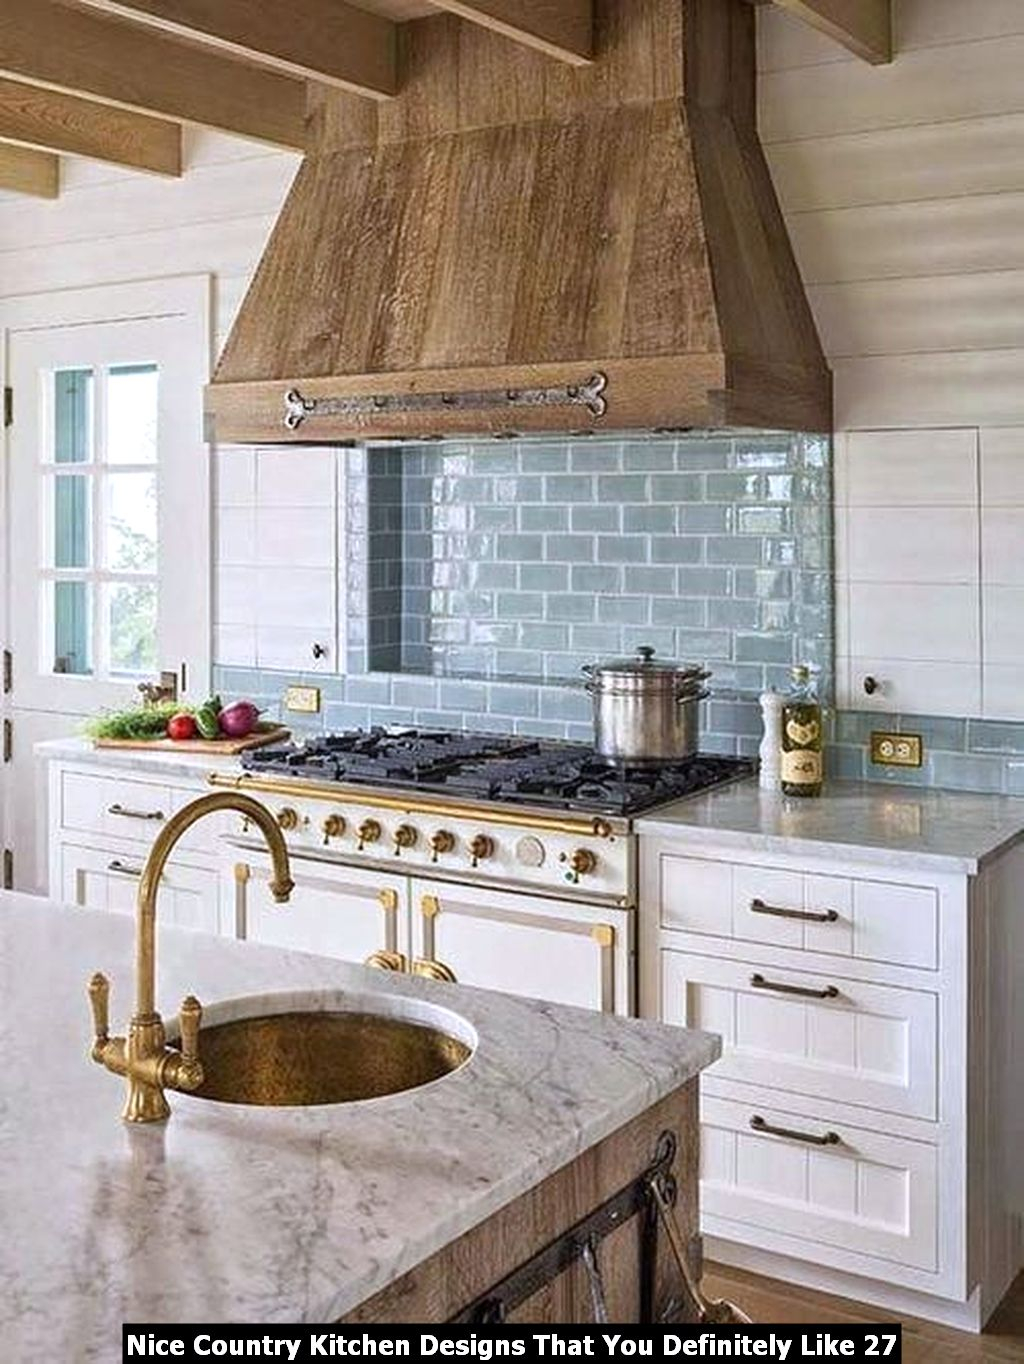 Nice Country Kitchen Designs That You Definitely Like 27